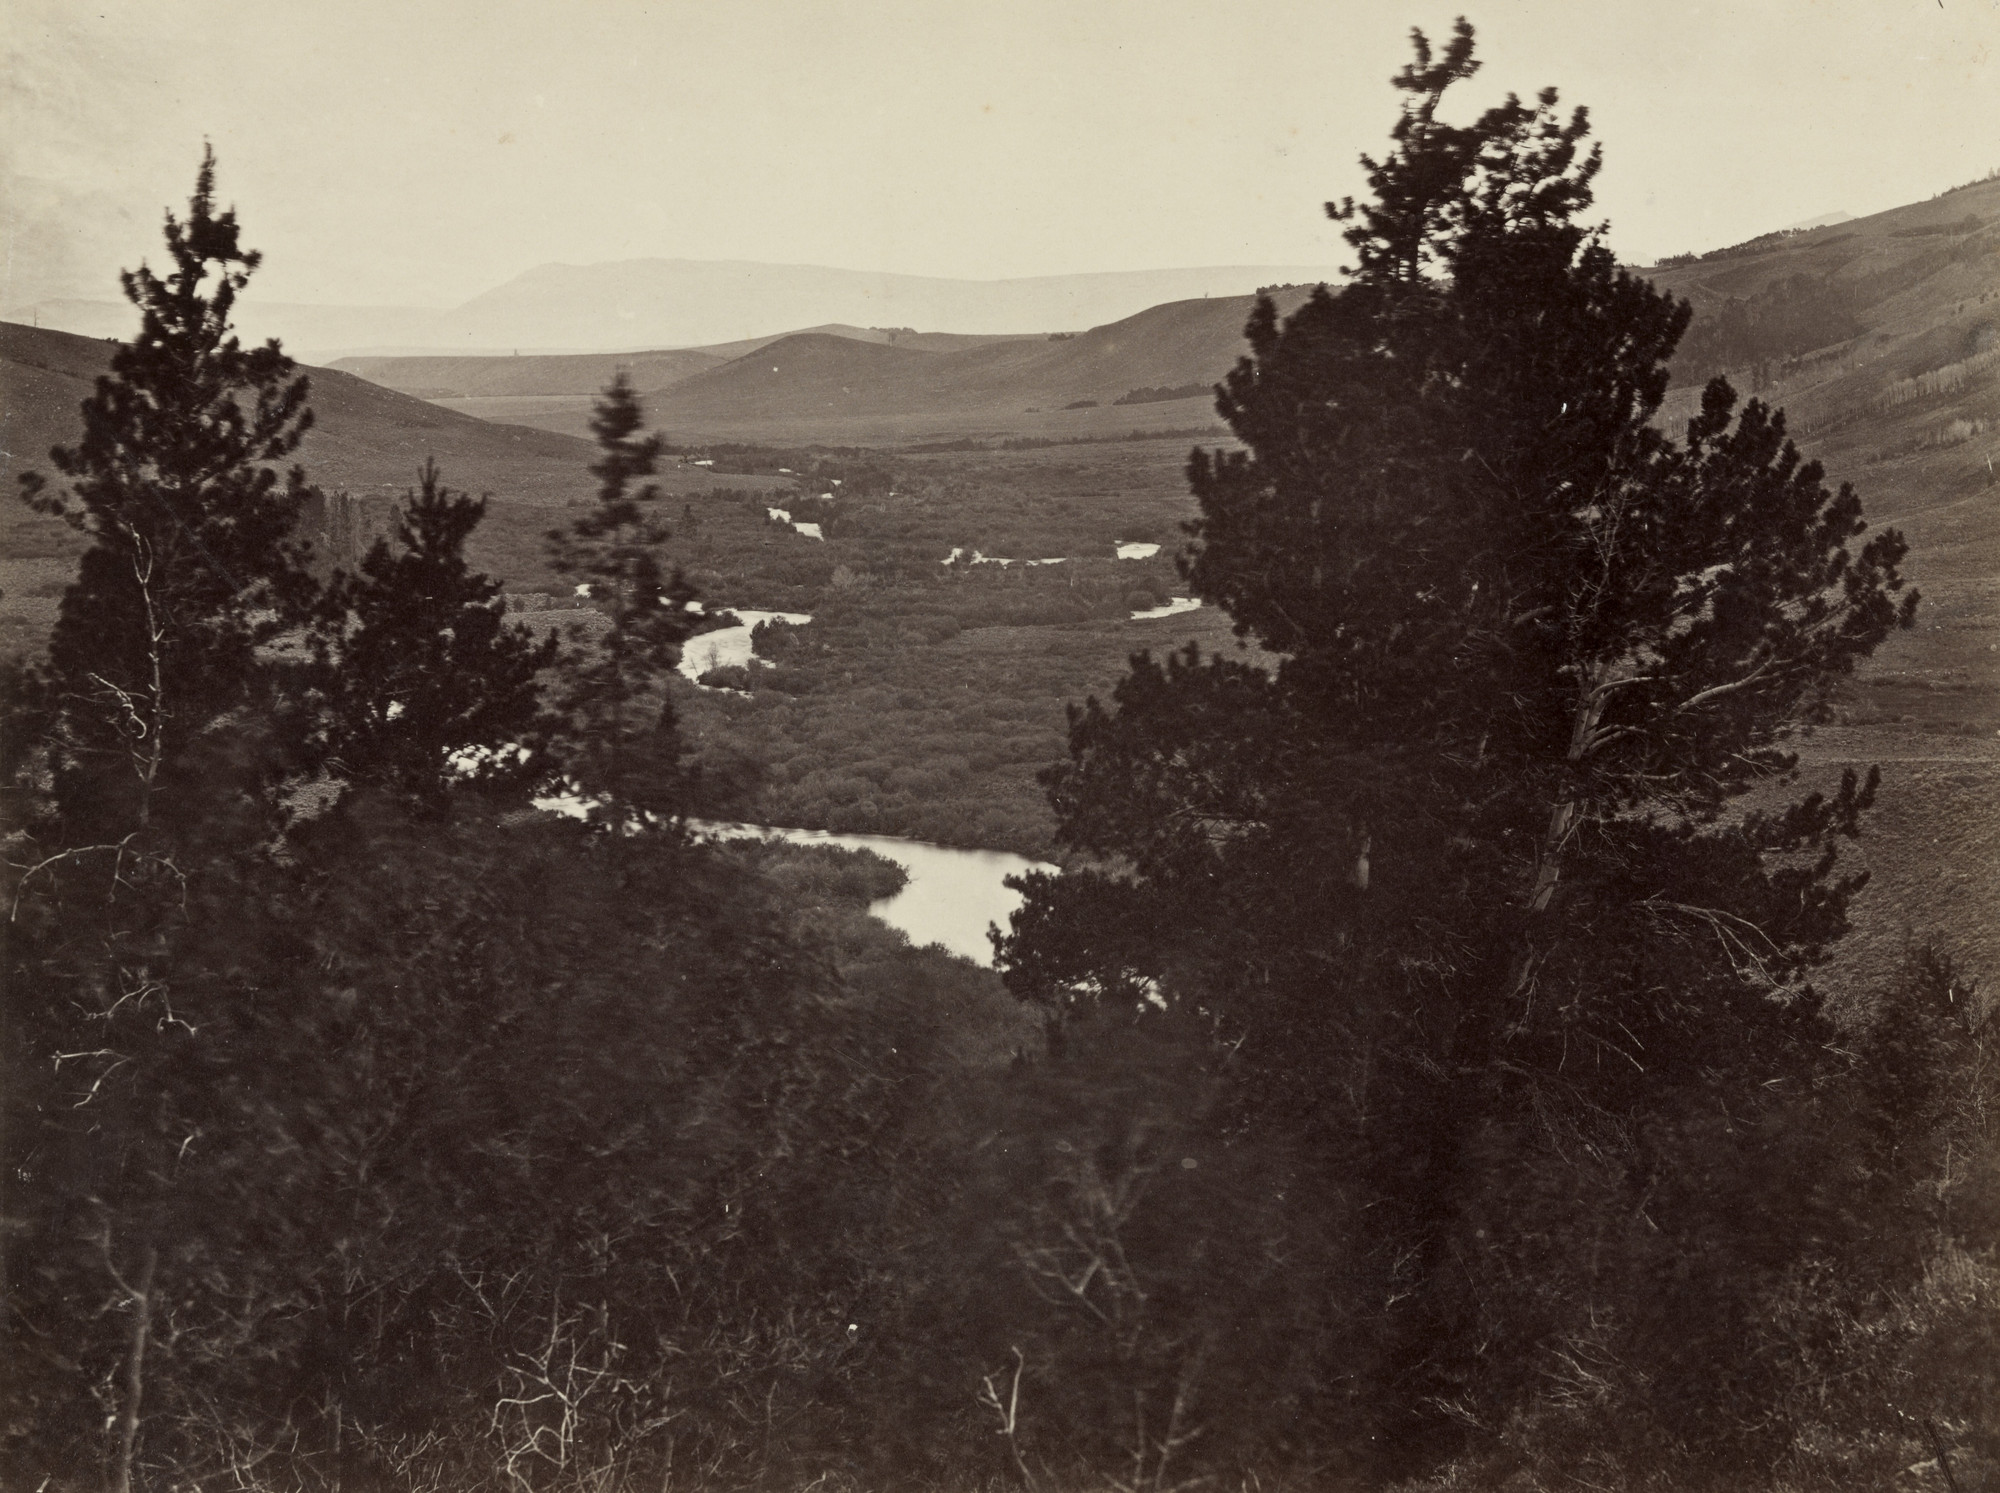 Andrew Joseph Russell. Valley of the Great Laramie from the Mountains. 1860-69